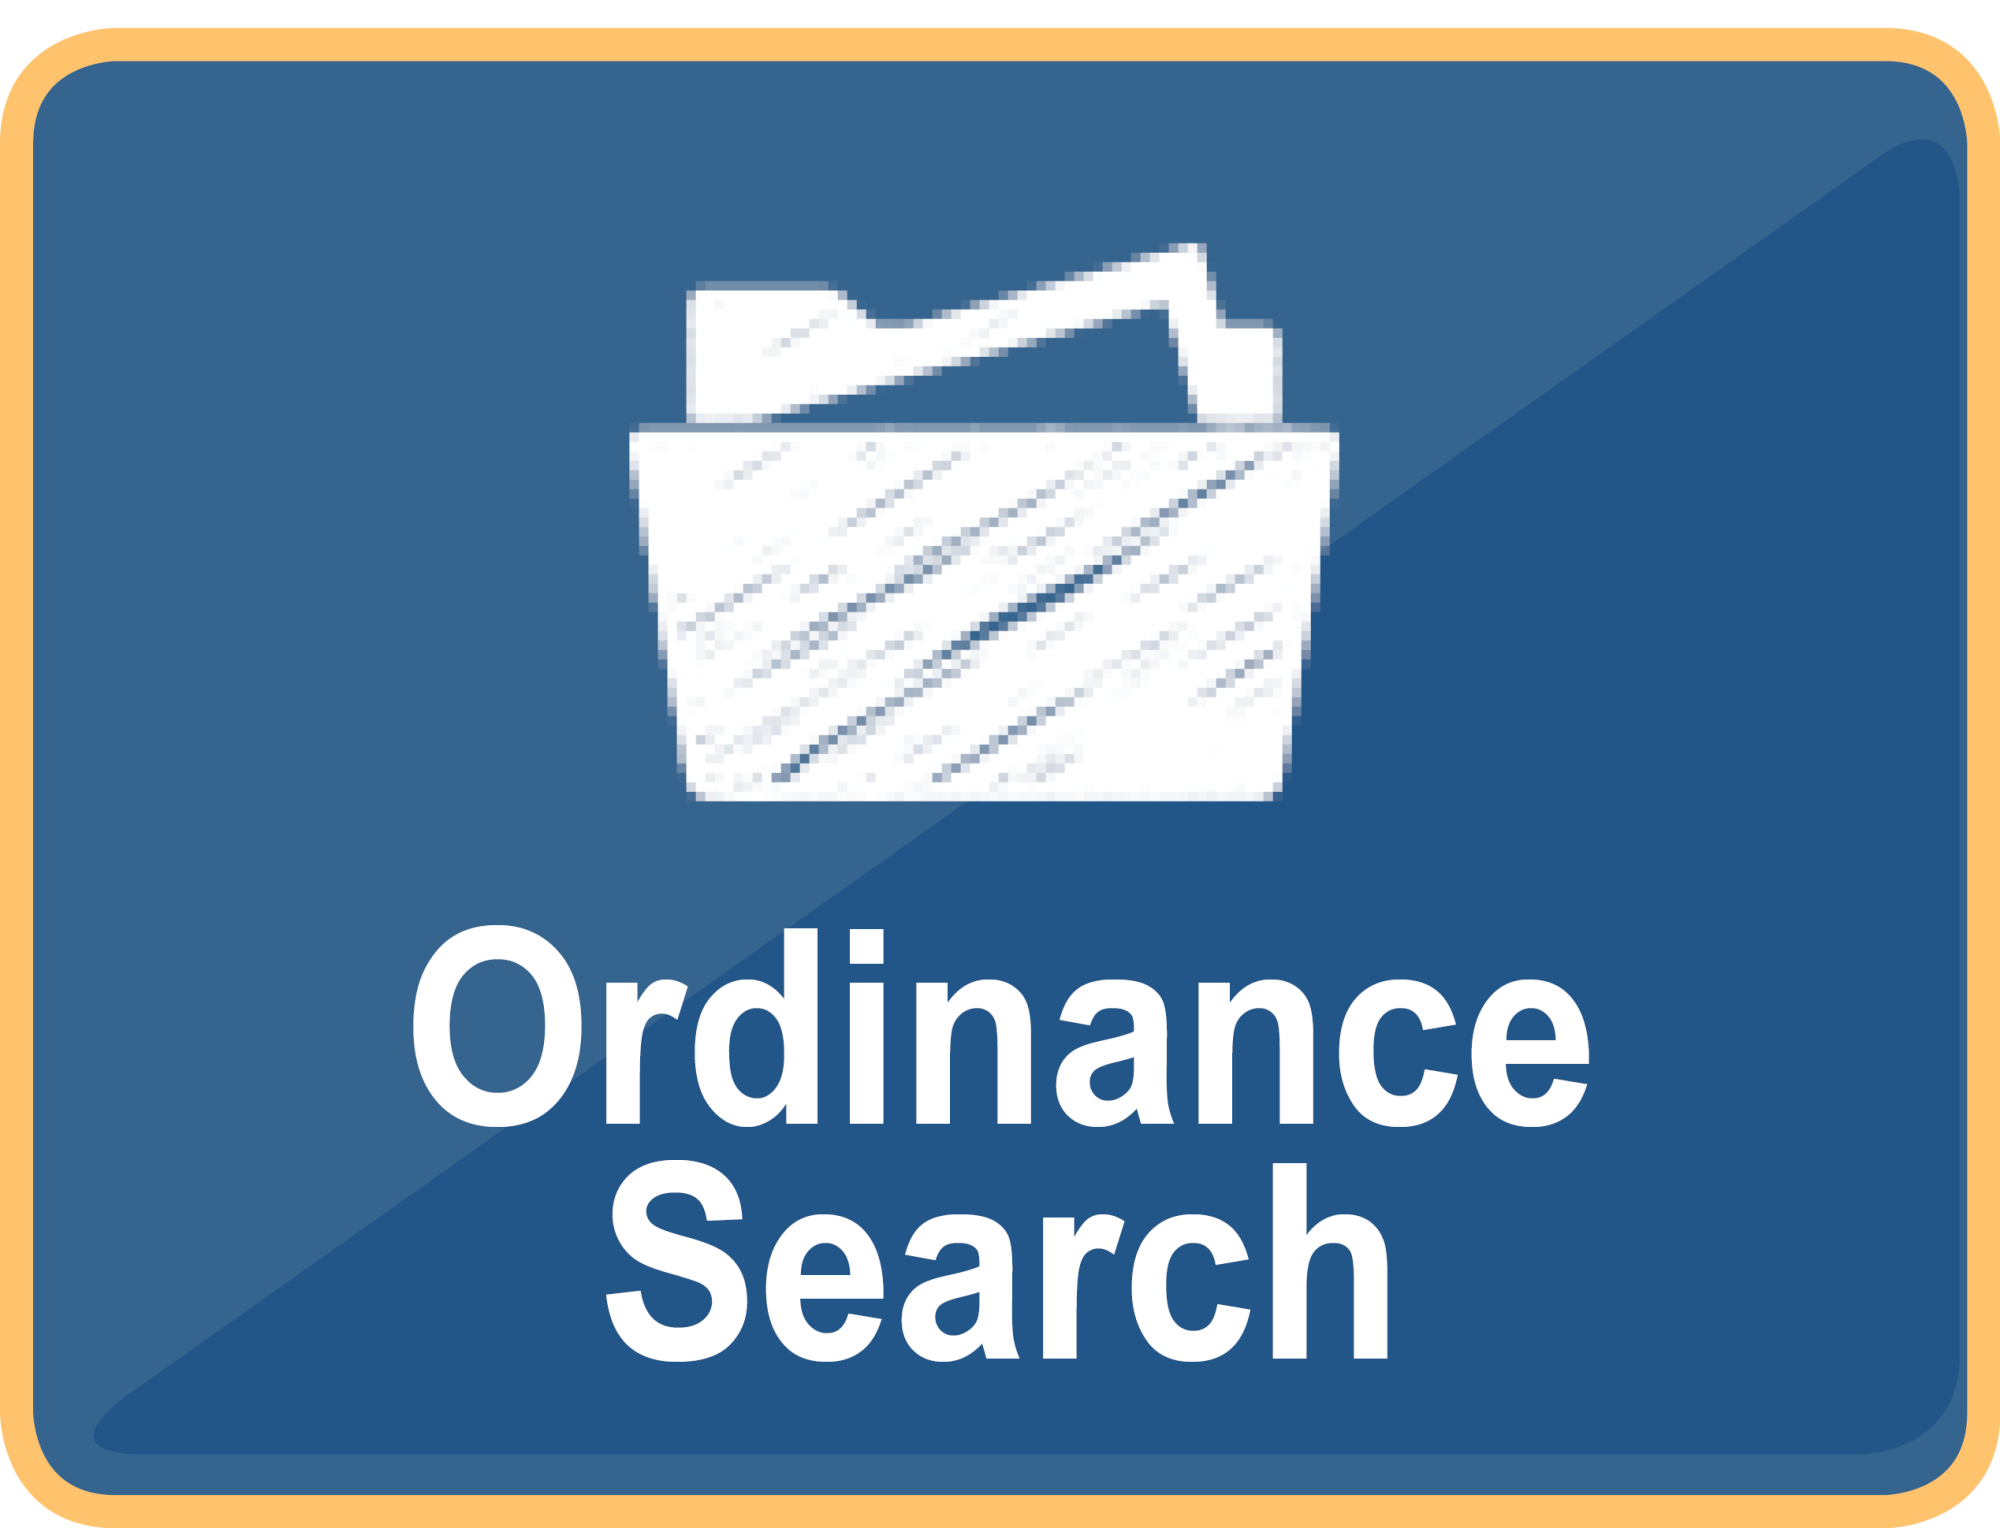 Ordinance Search